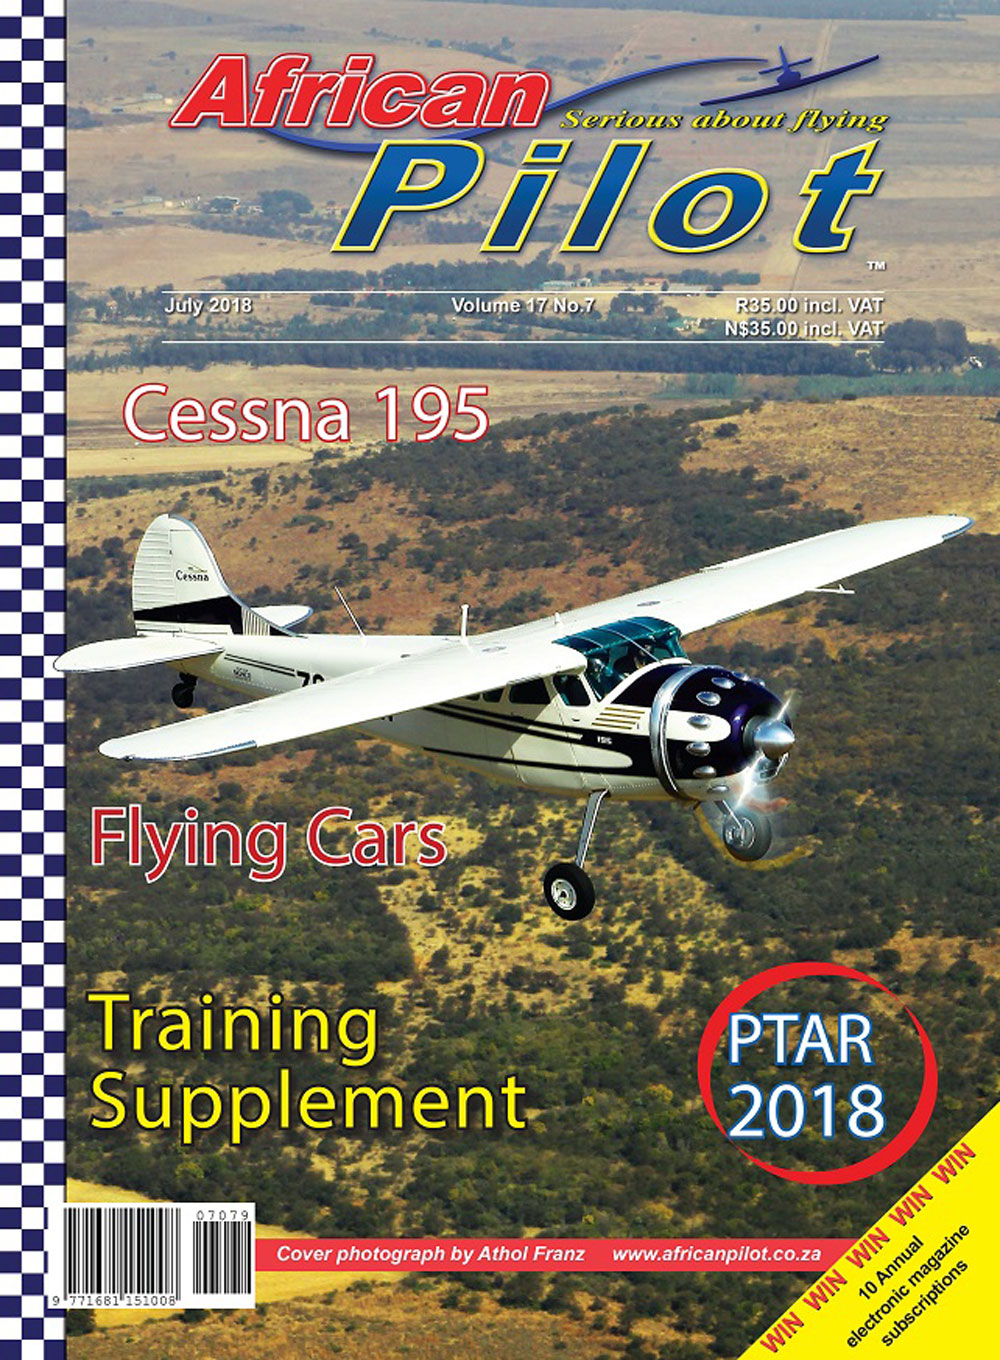 African Pilot July 2018 edition